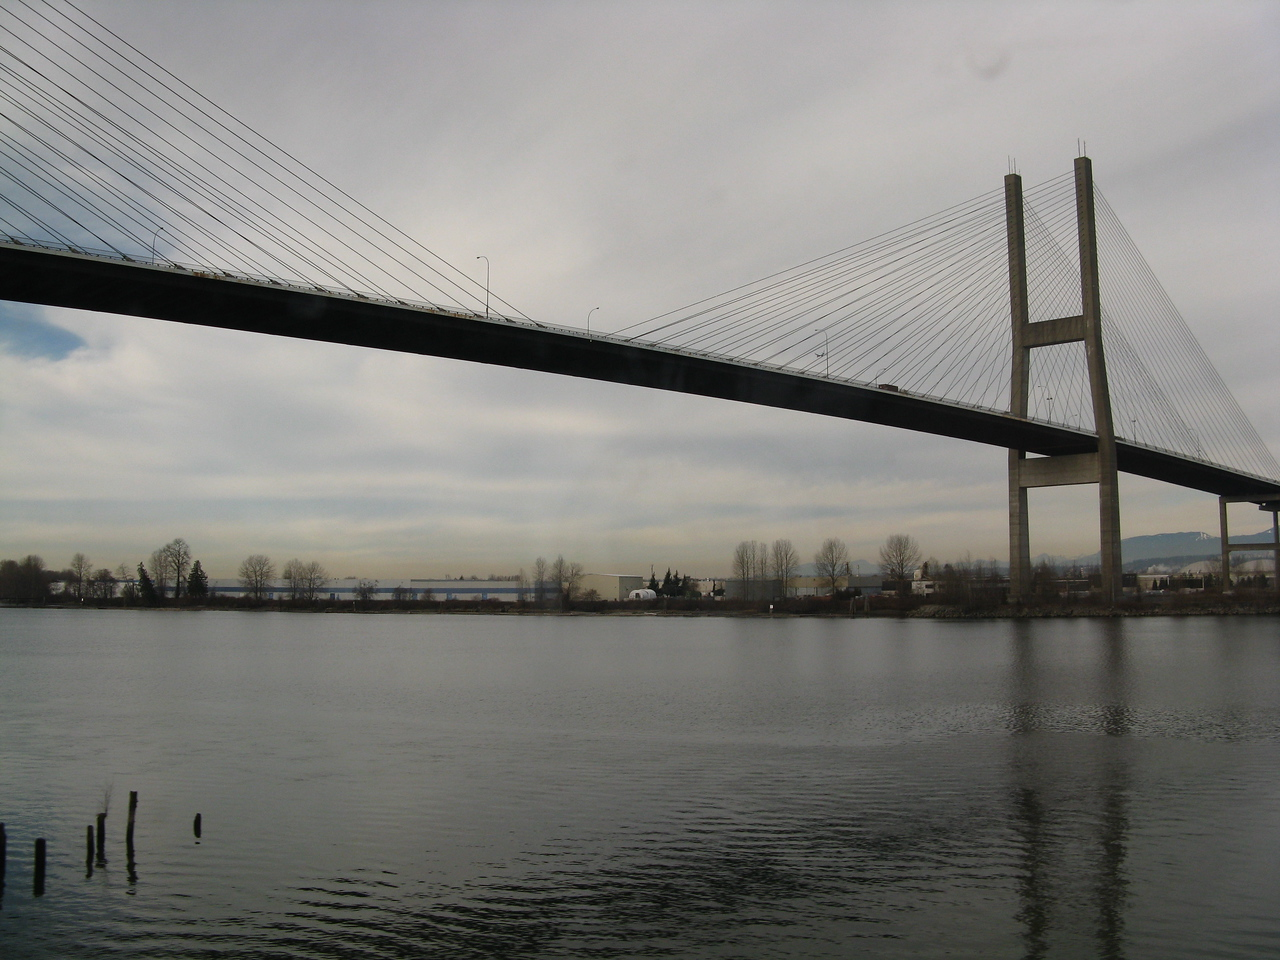 The car bridge across the Fraser River south of Vancouver, BC.